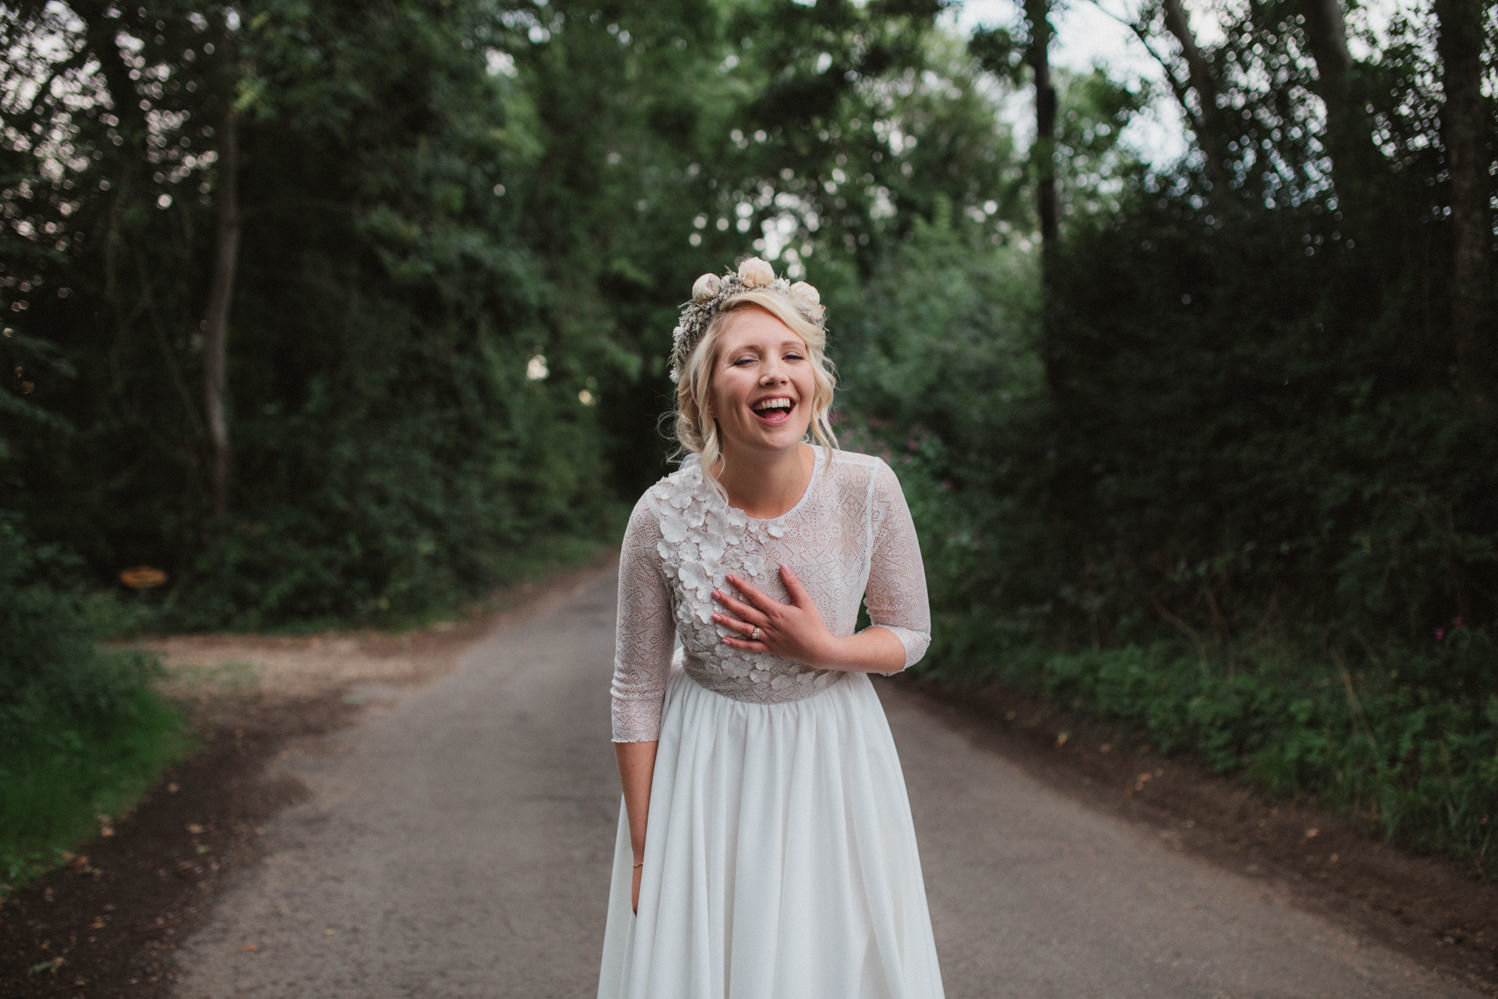 Bride laughing after her wedding down a country lane in Woodbridge, Suffolk